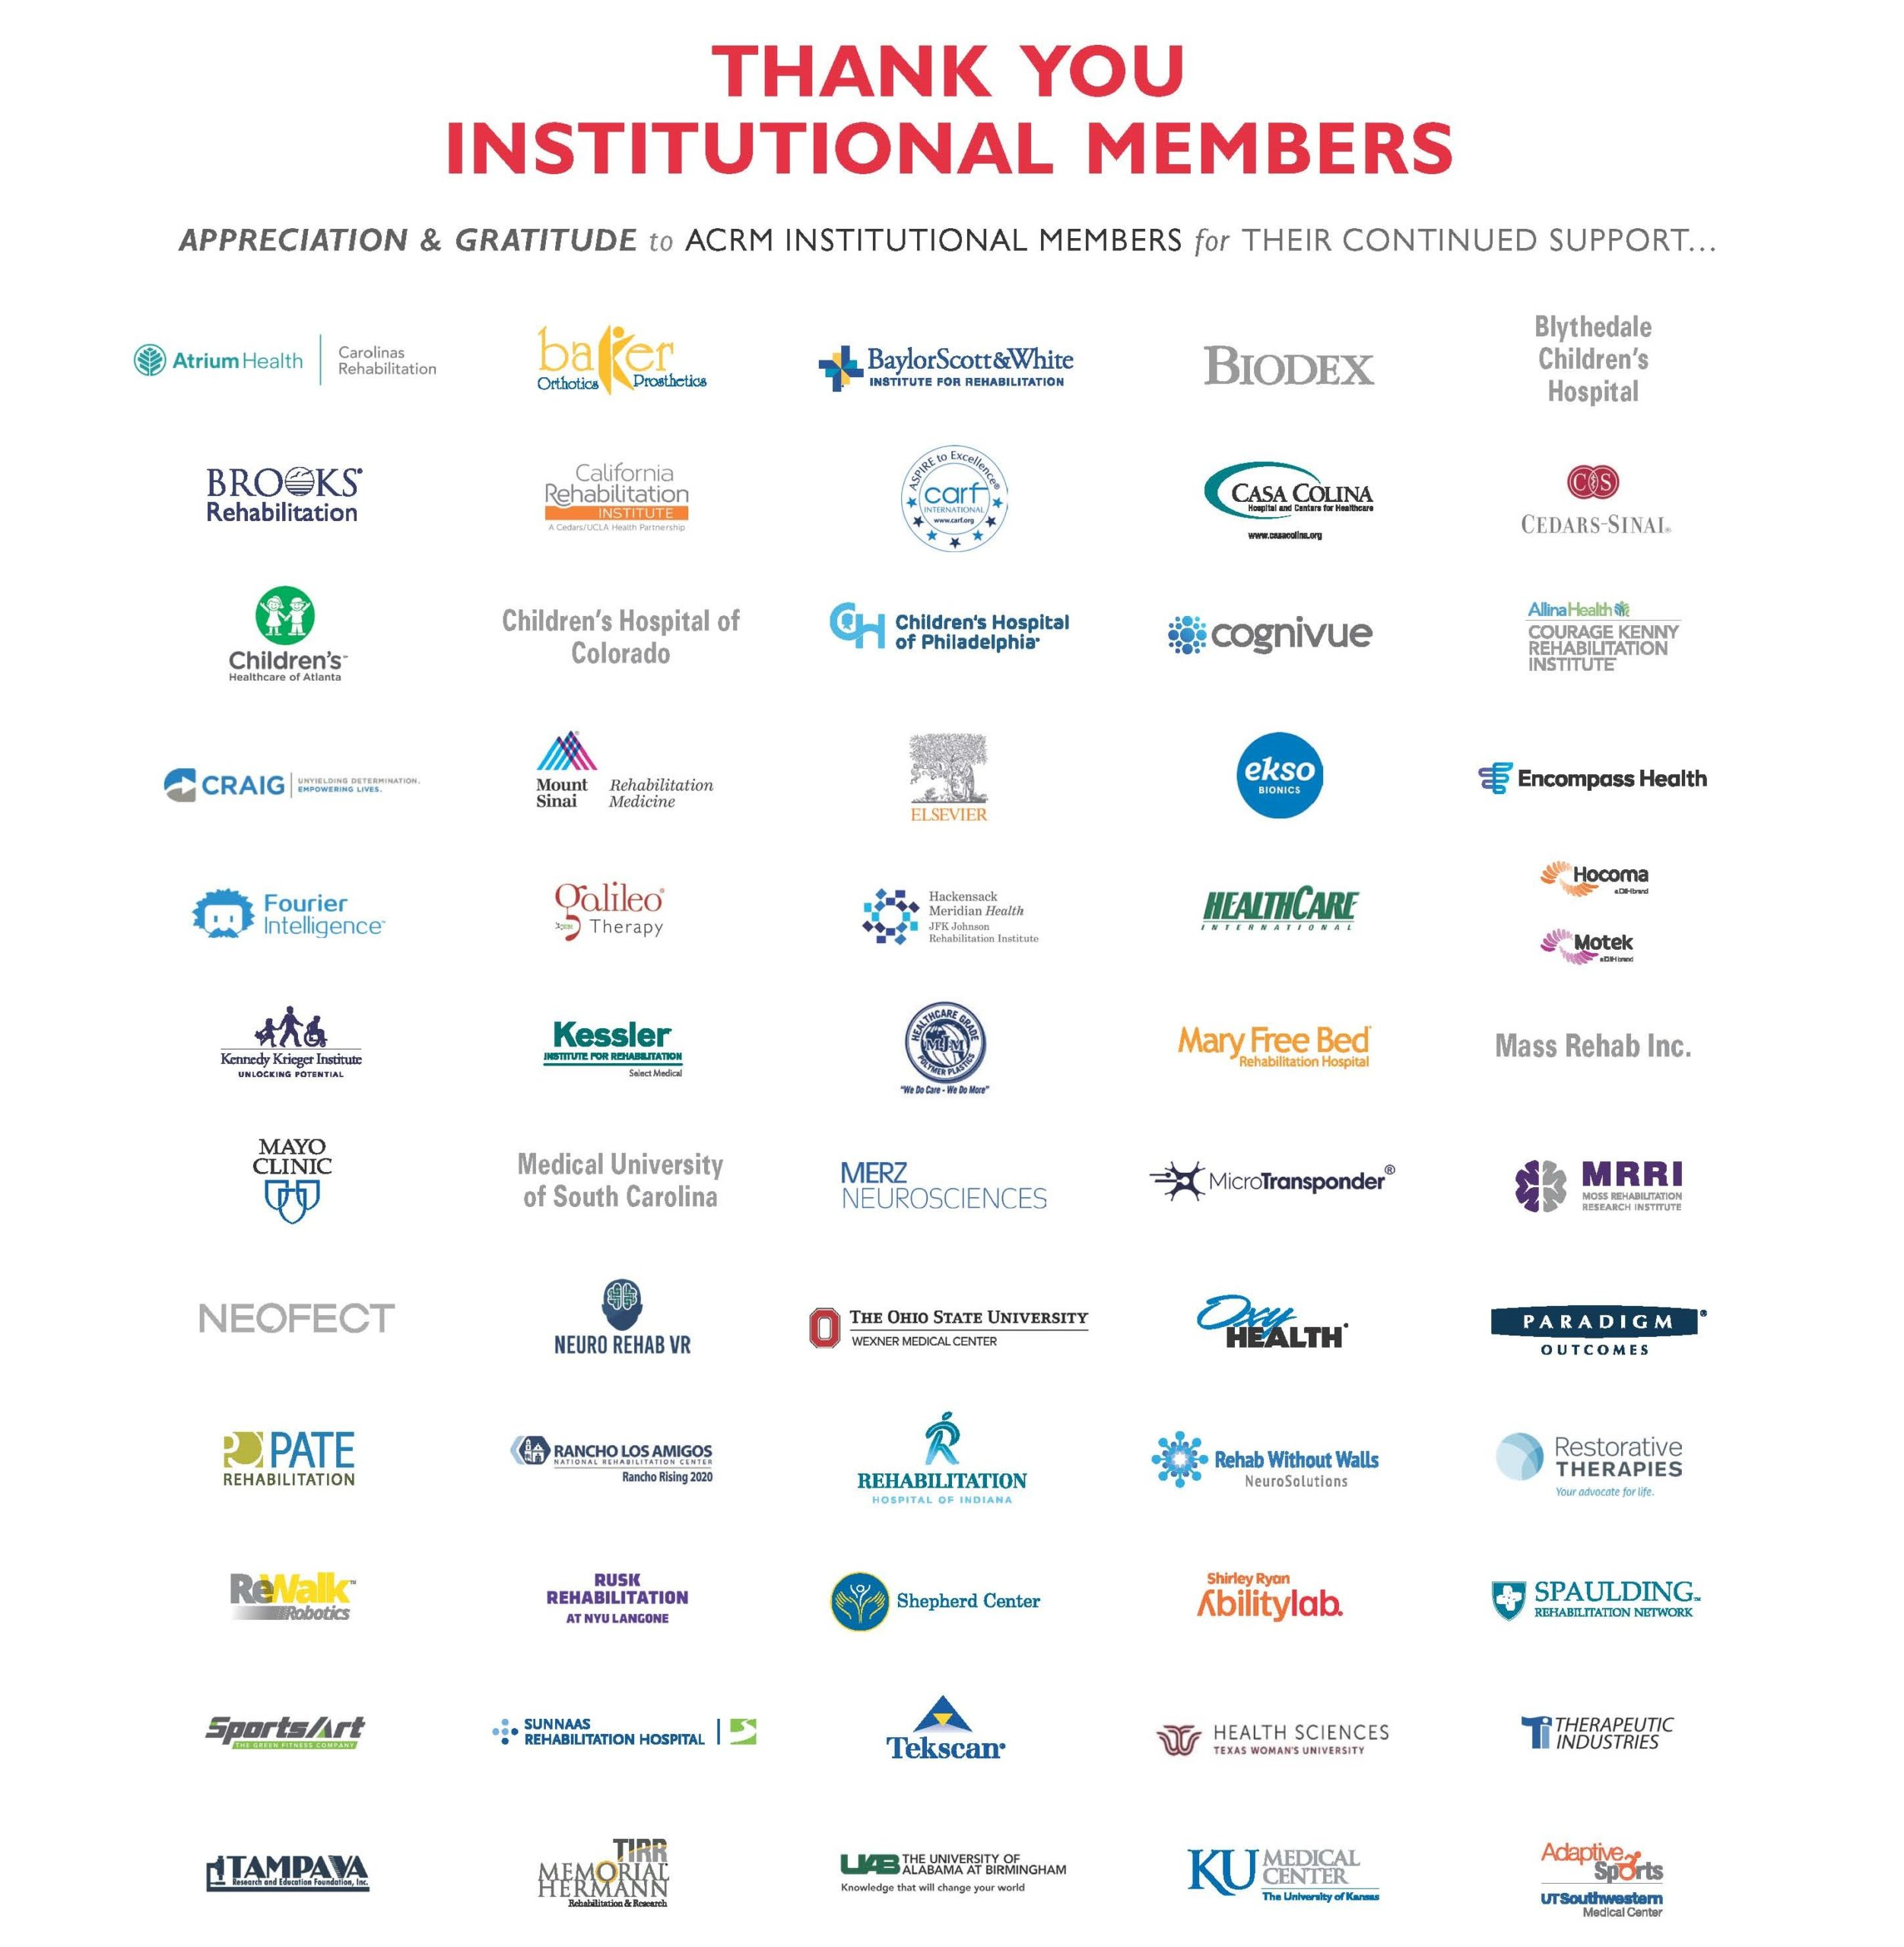 2020 ACRM Institutional Members image